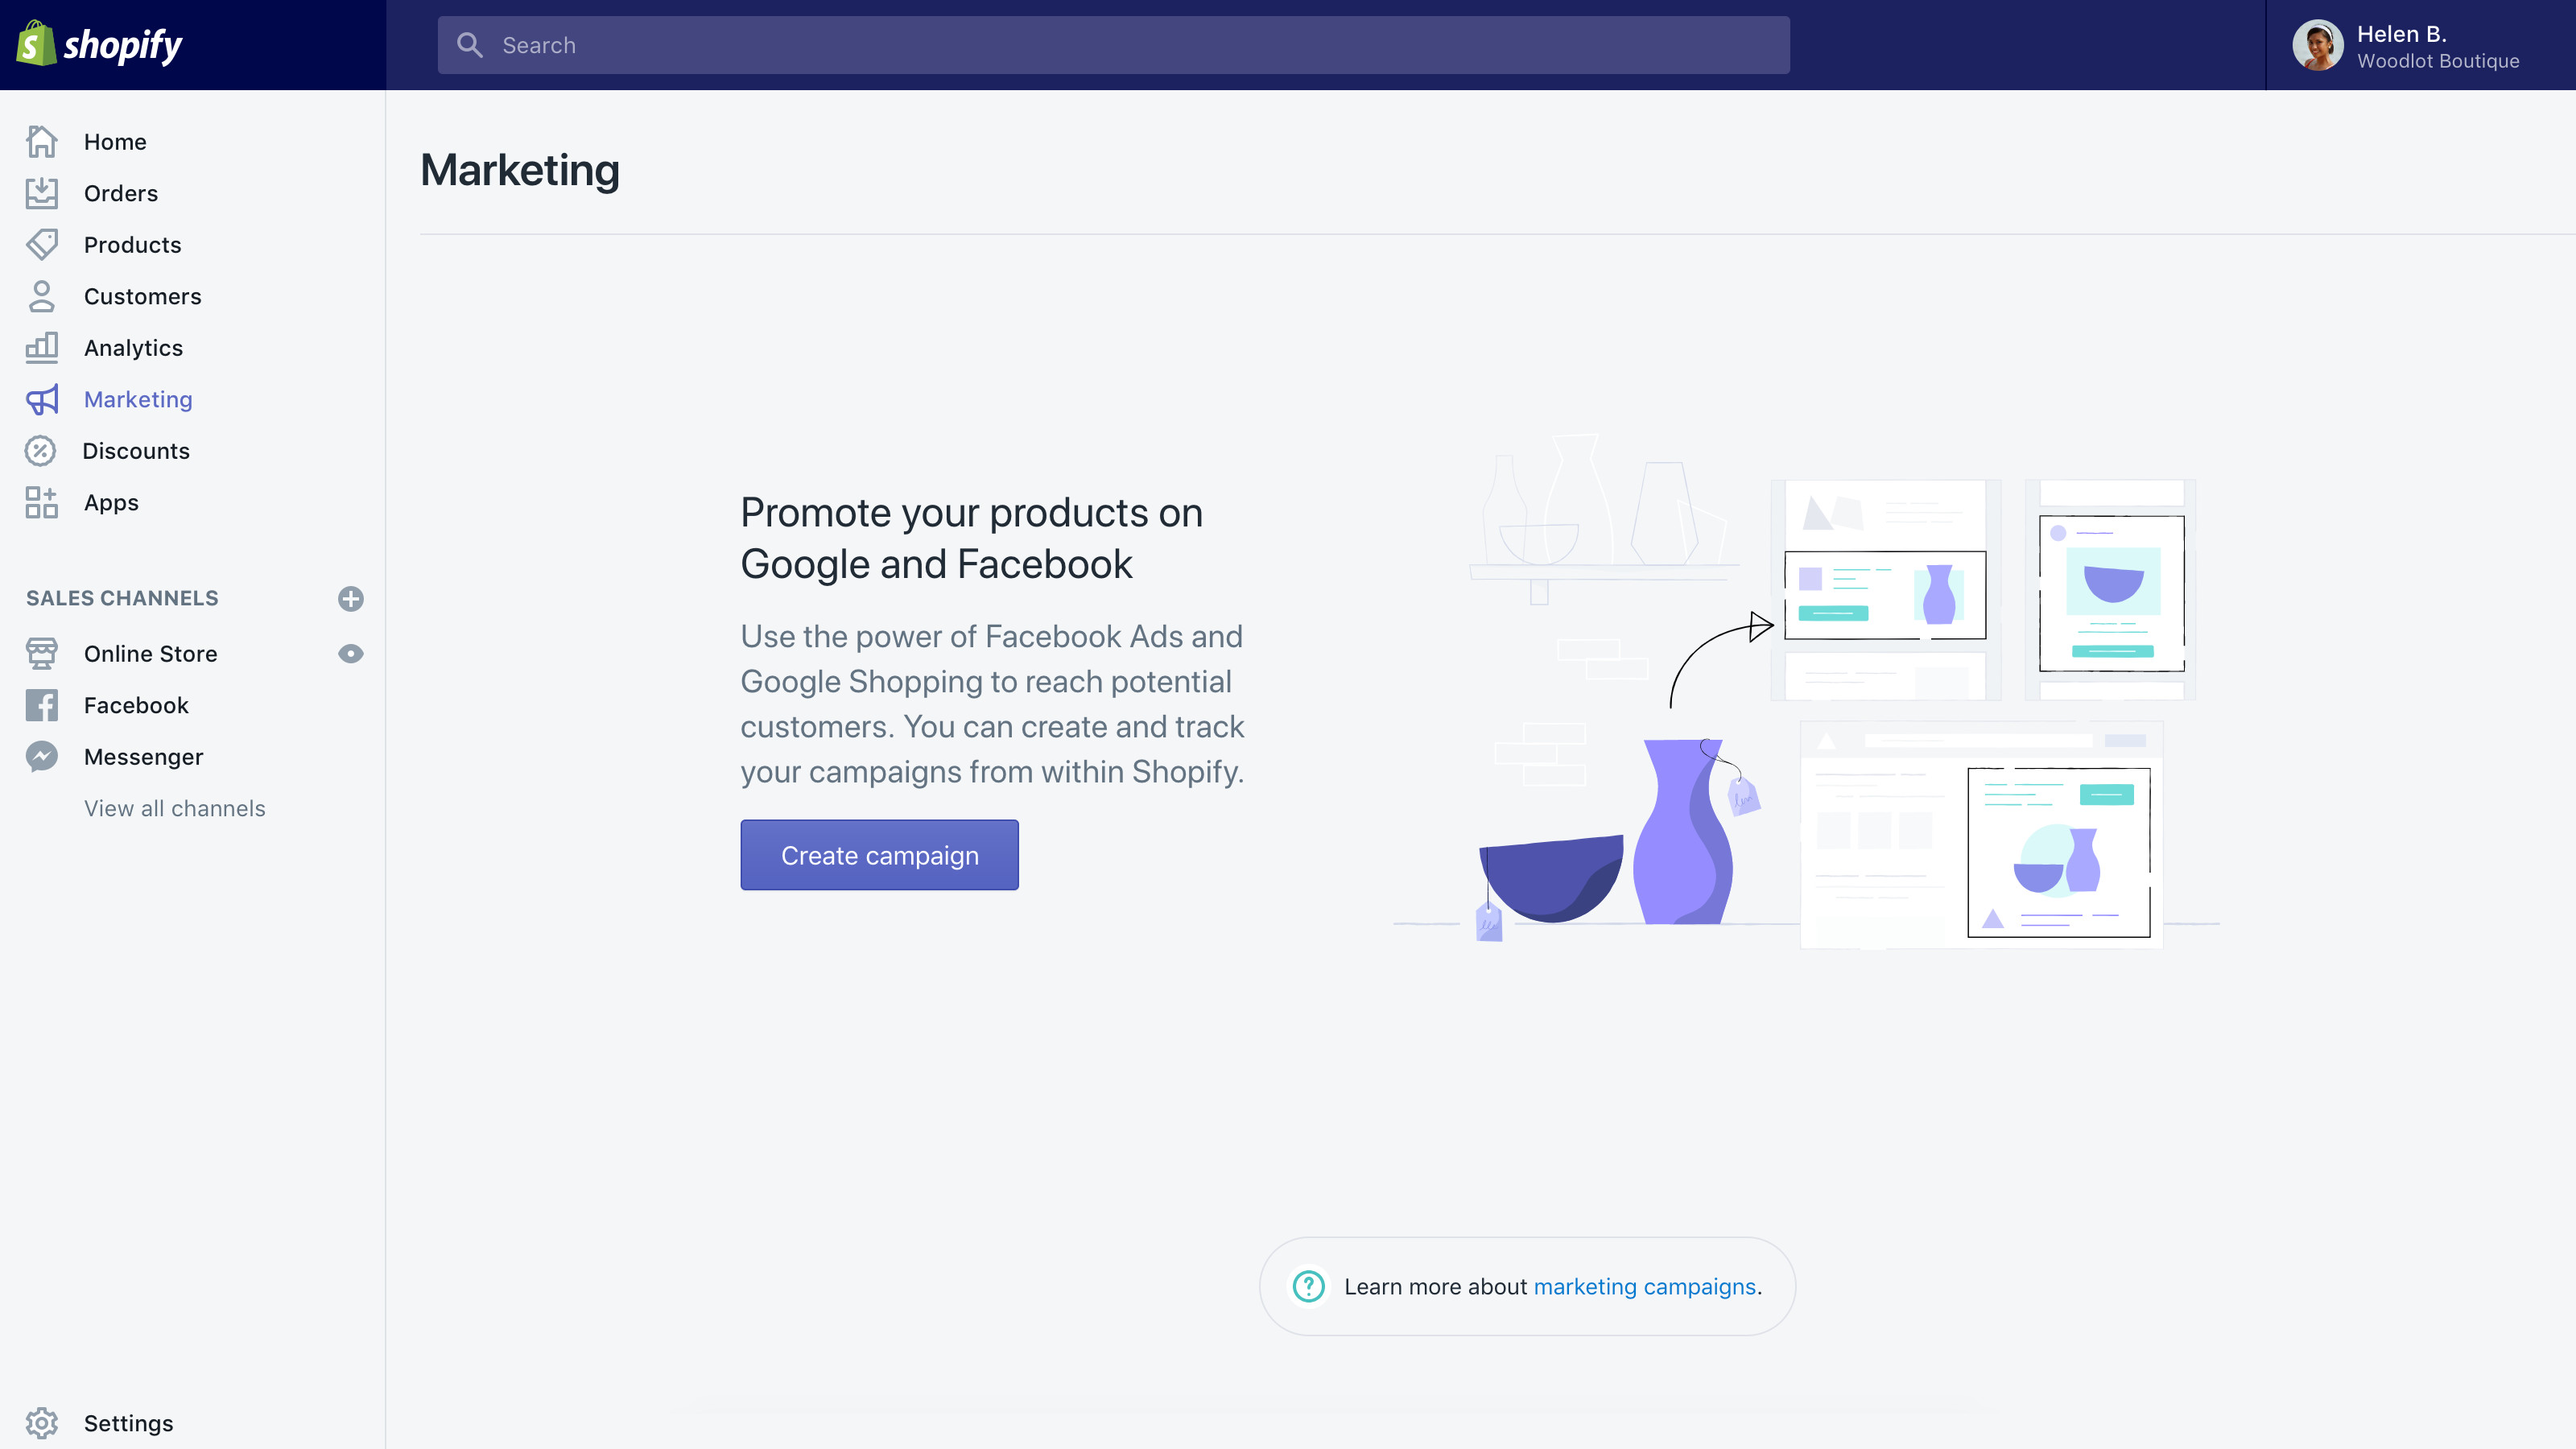 shopify reviews online marketing features